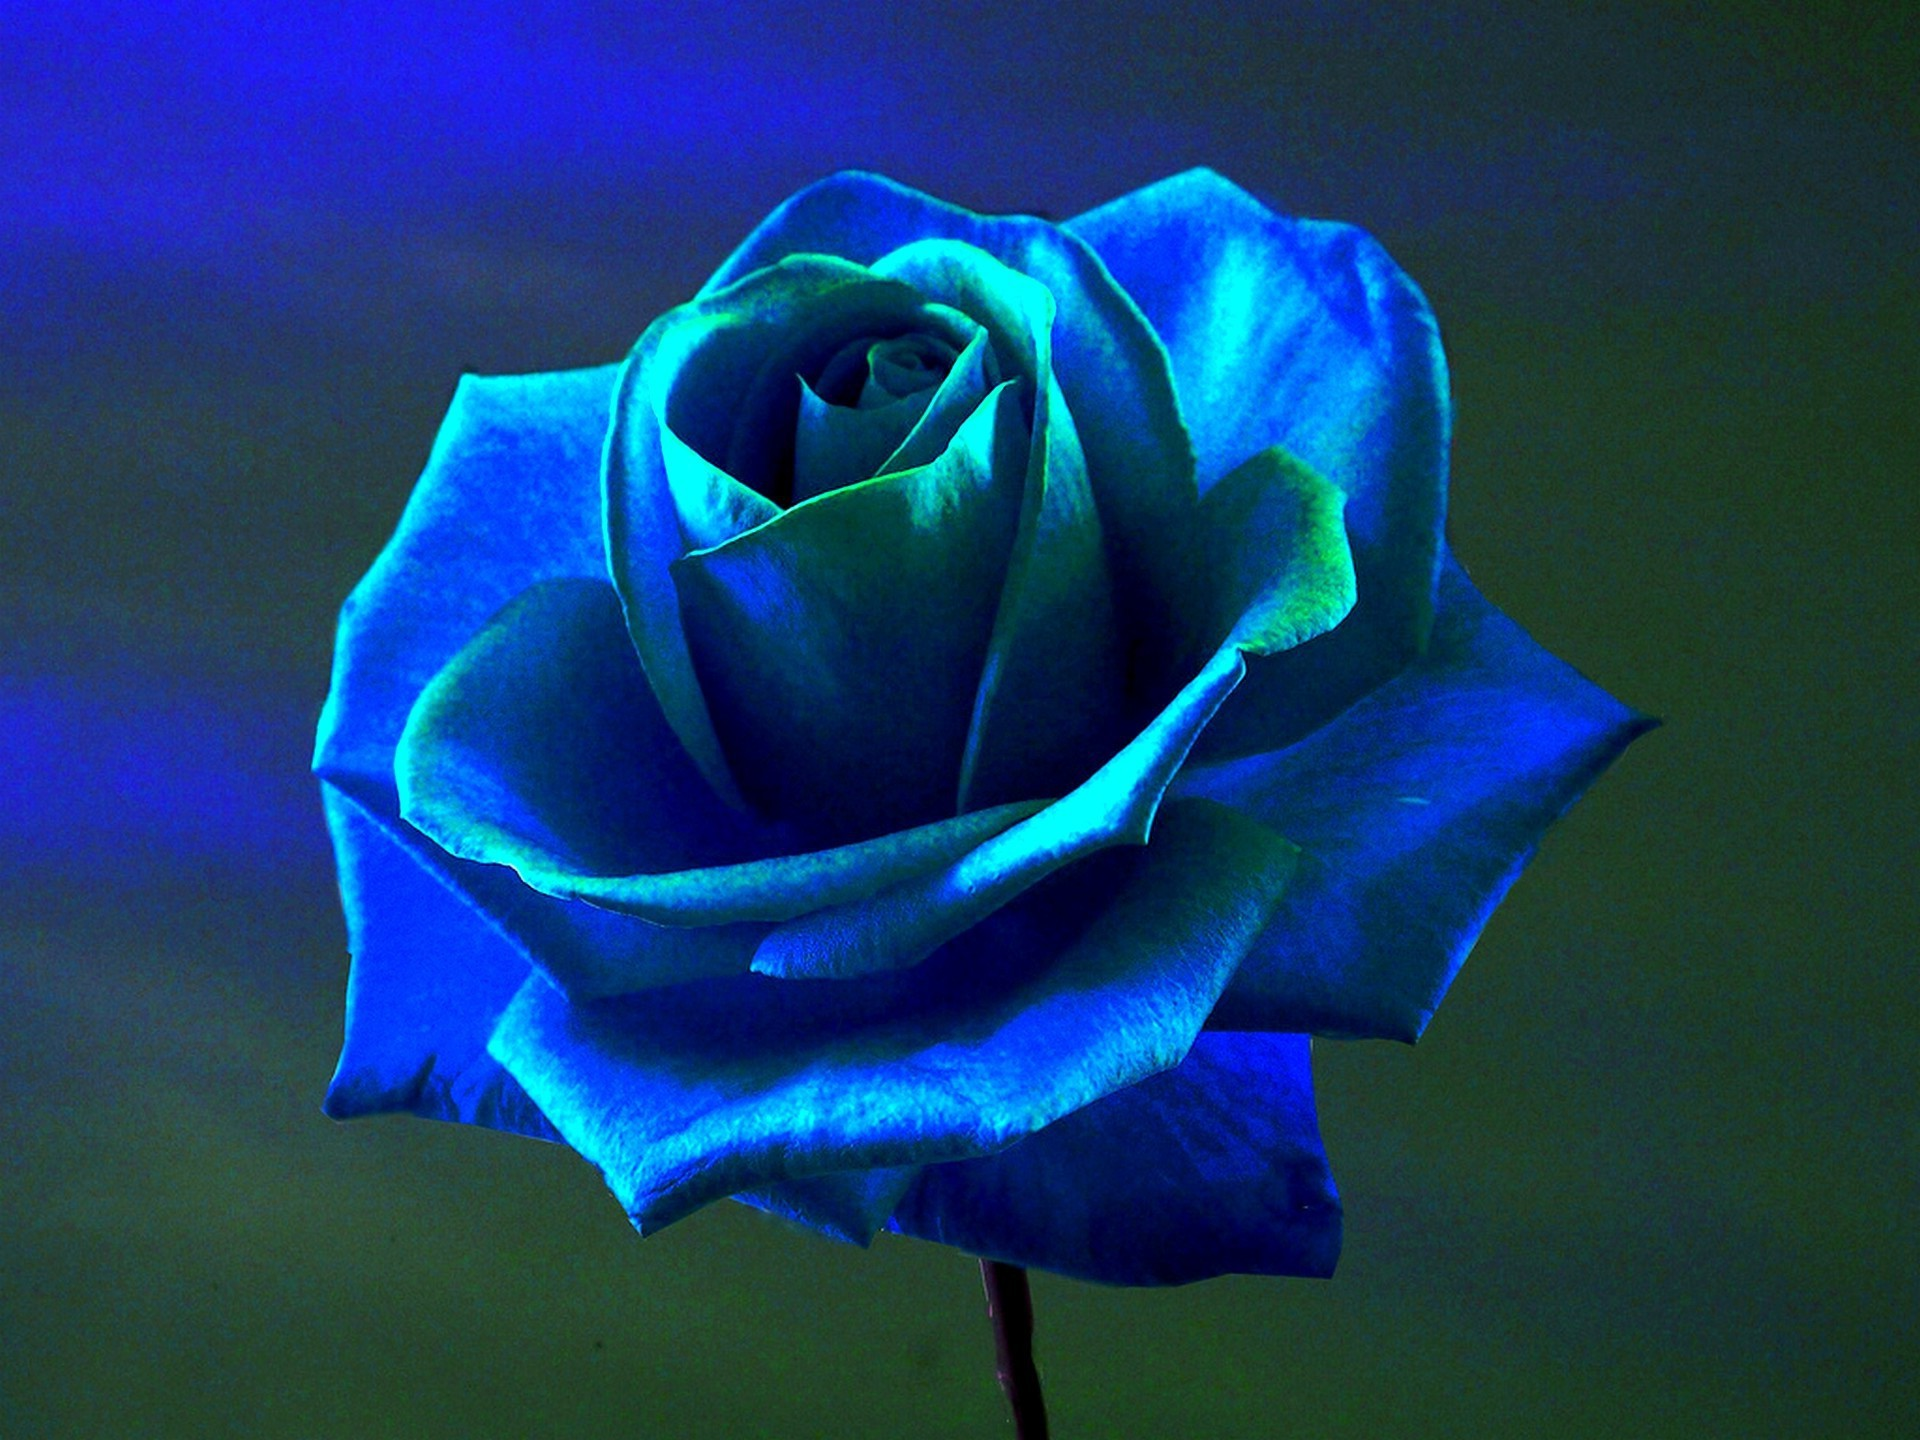 Blue Rose Wallpapers Images Photos Pictures Backgrounds